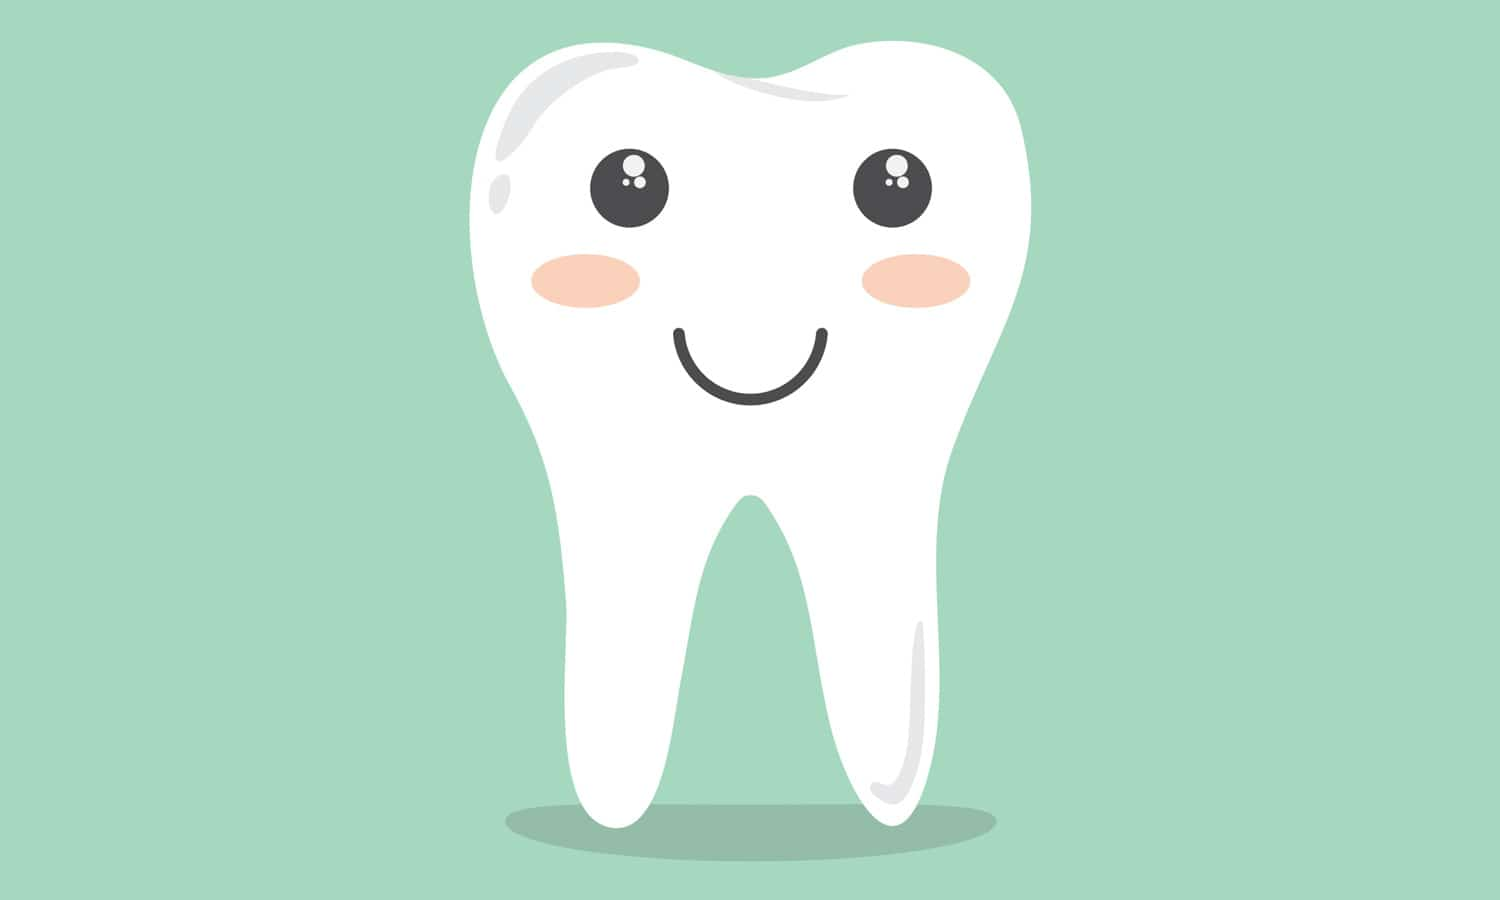 What You Should Know About CBD And Oral Health - The Fresh Toast